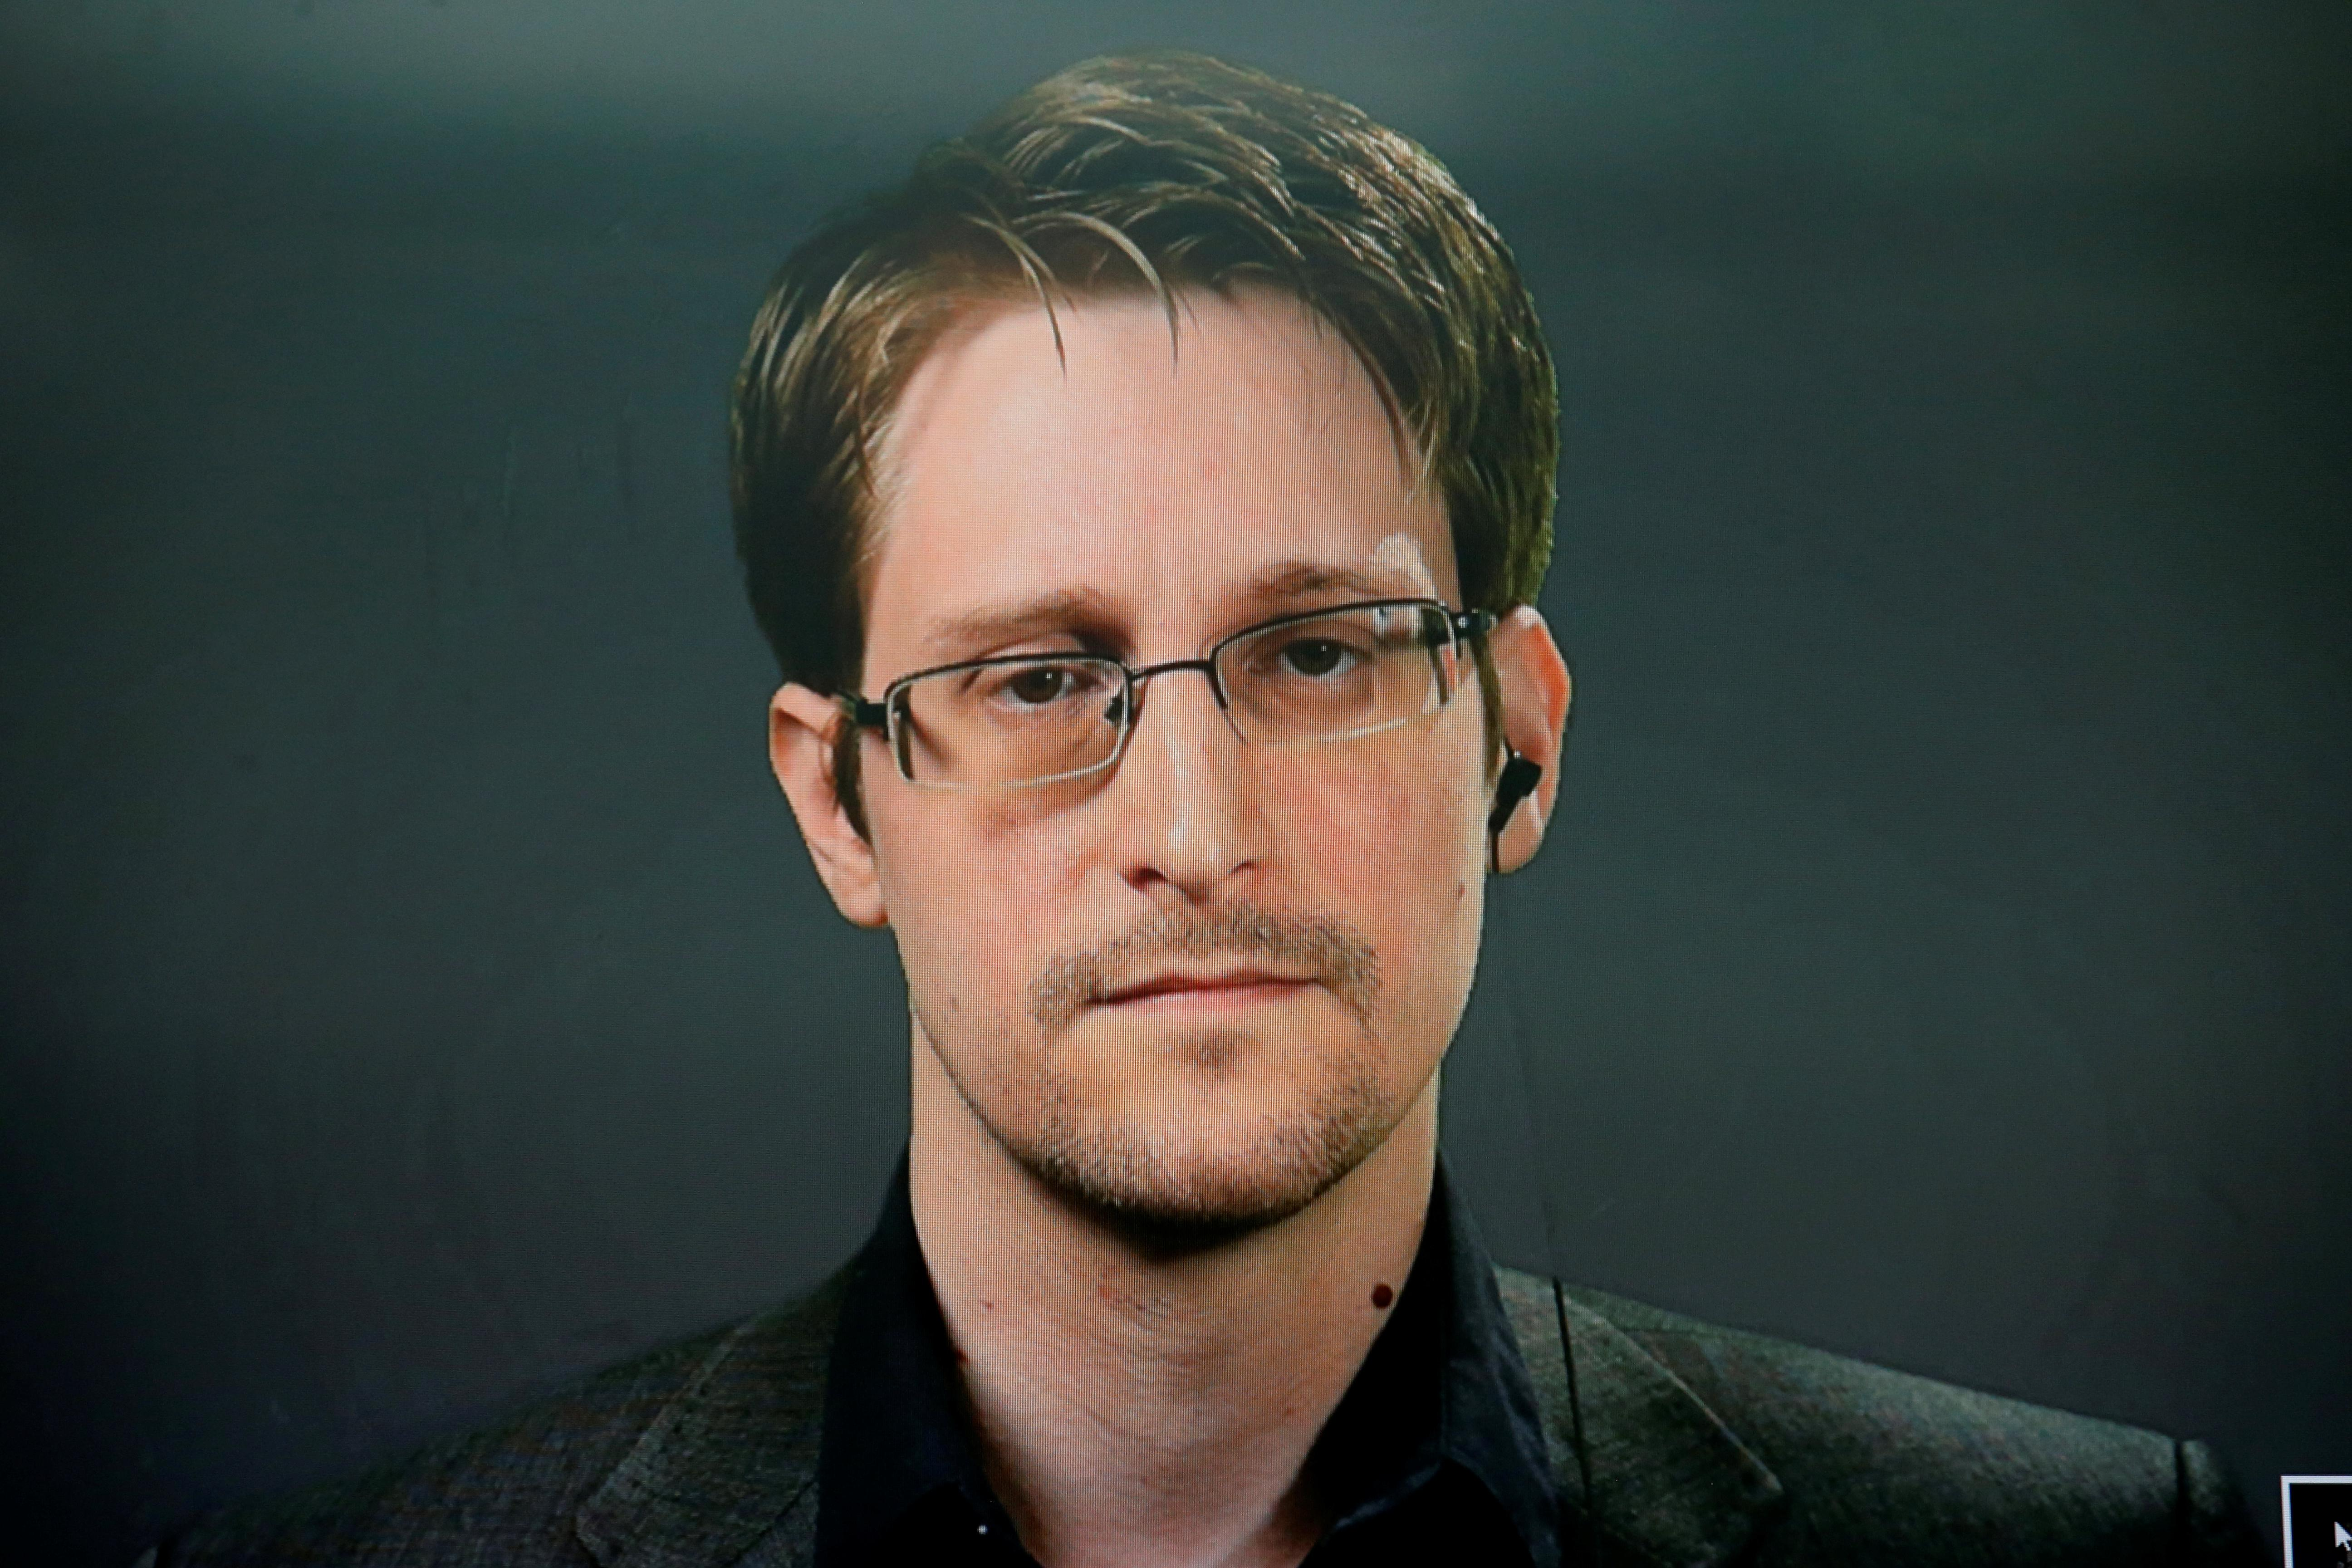 Snowden will make first major appearance since U.S. lawsuit at...